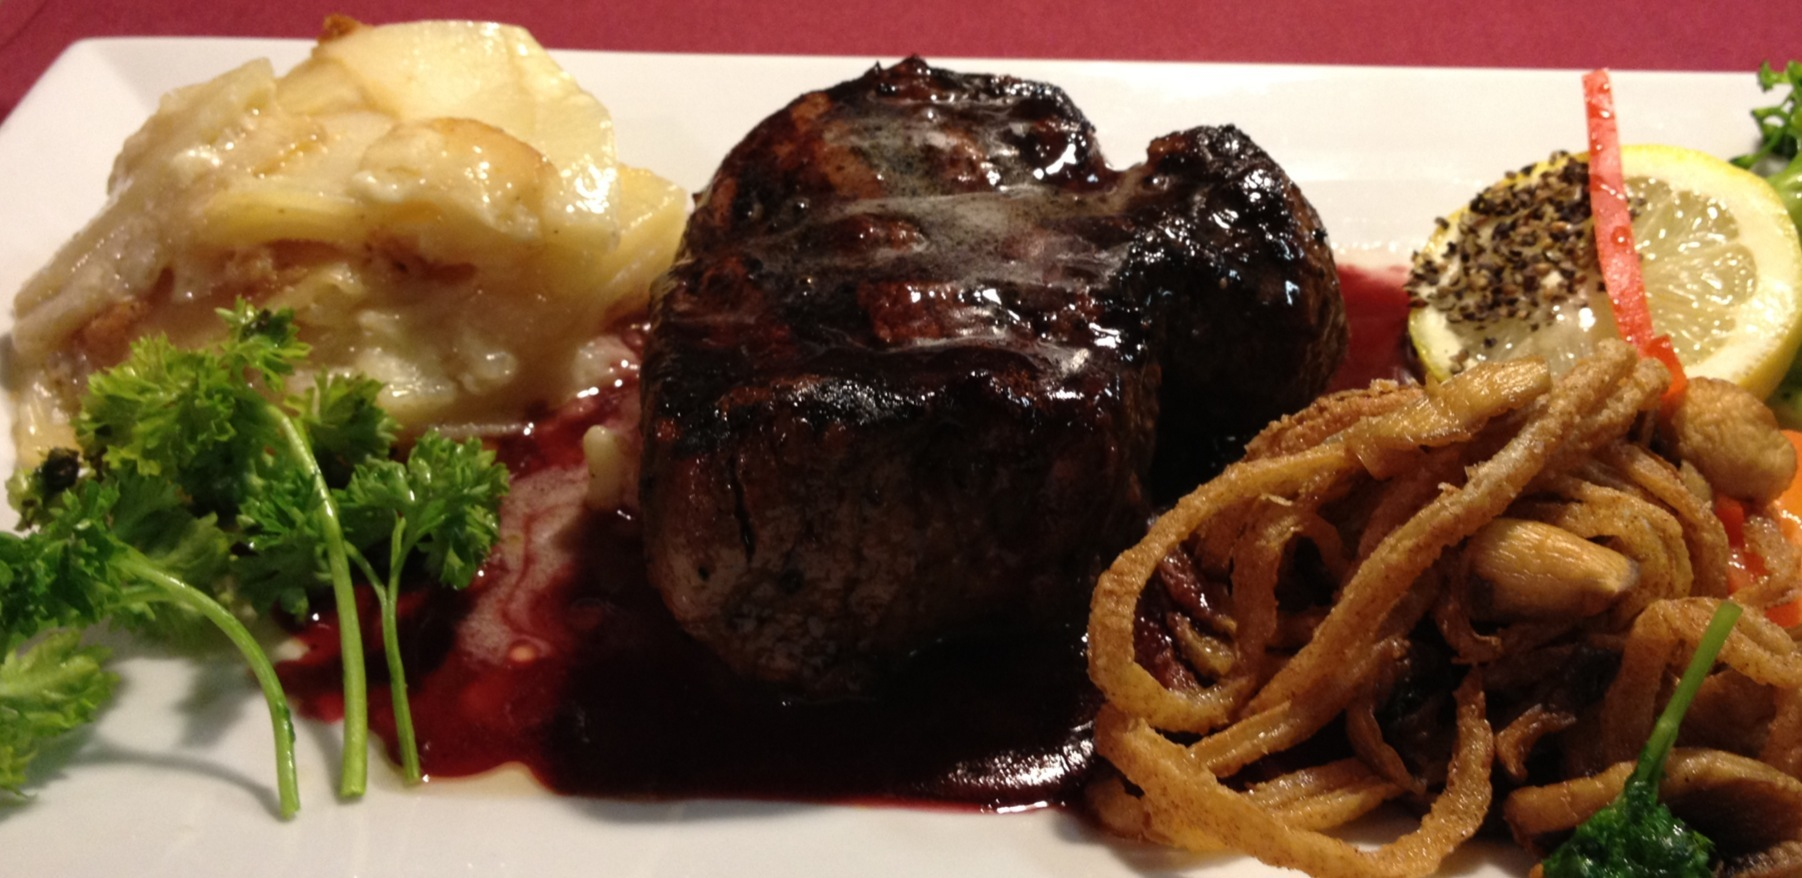 Grilled Mignon(9oz.) with Merlot Wine Reduction, Sizzled Mushrooms-Onions...Whipped Potatoes